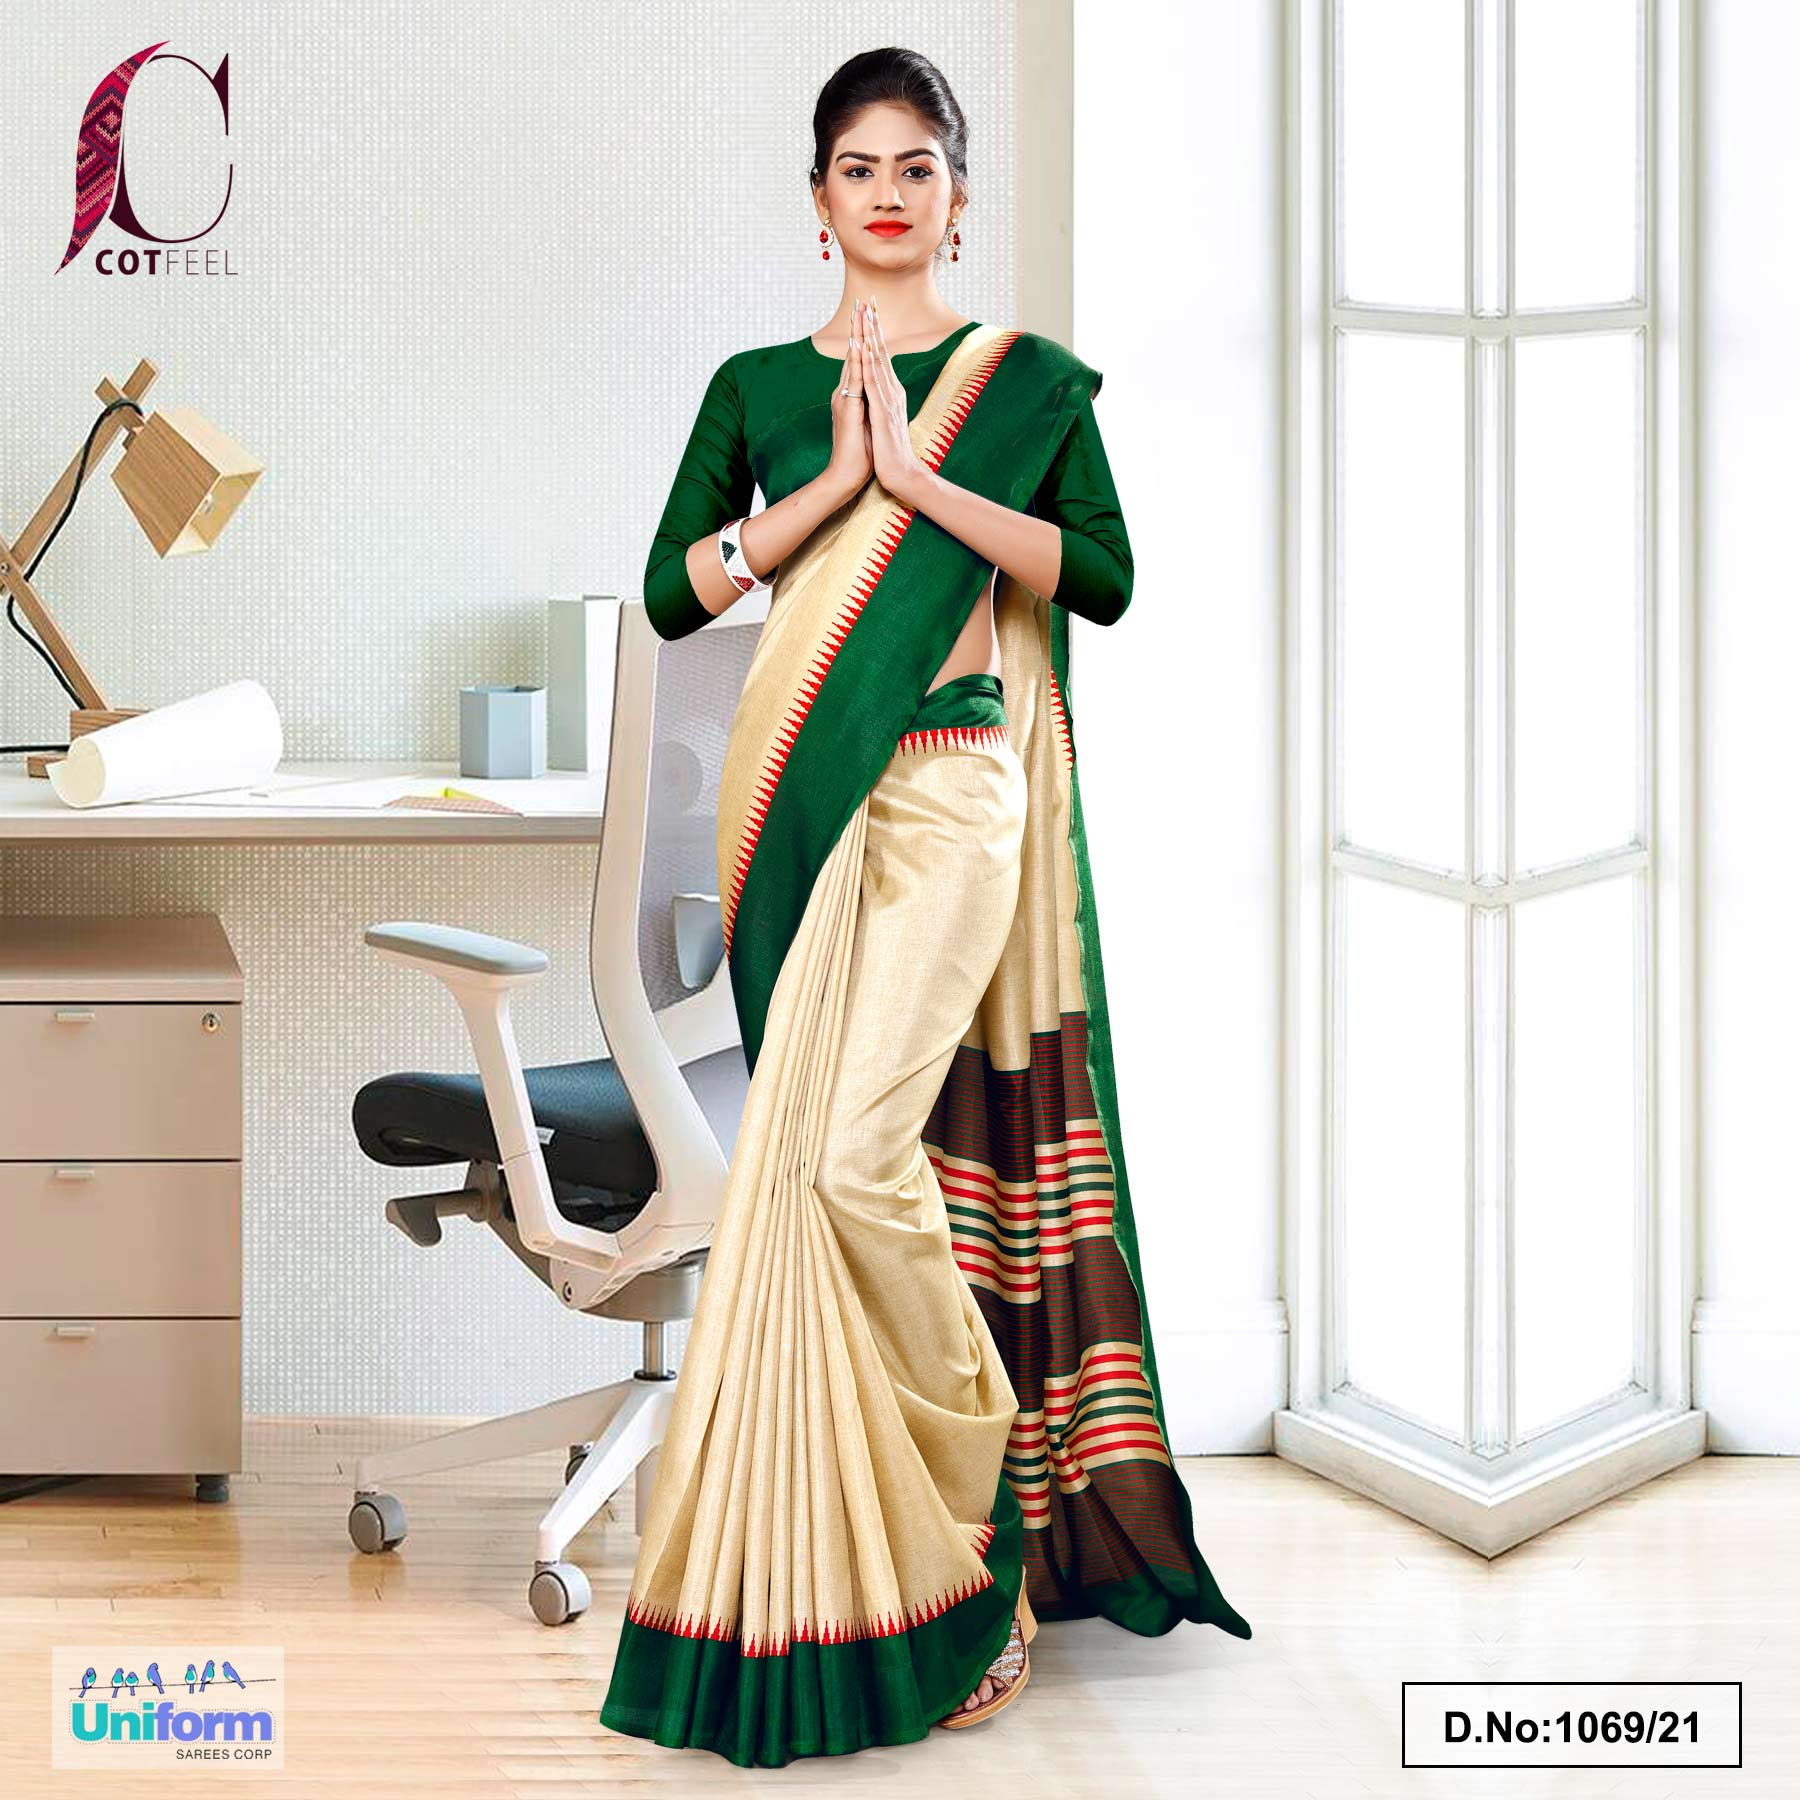 Beige Bottle Green Gala Border Premium Polycotton CotFeel Saree for Annual Function Uniform Sarees